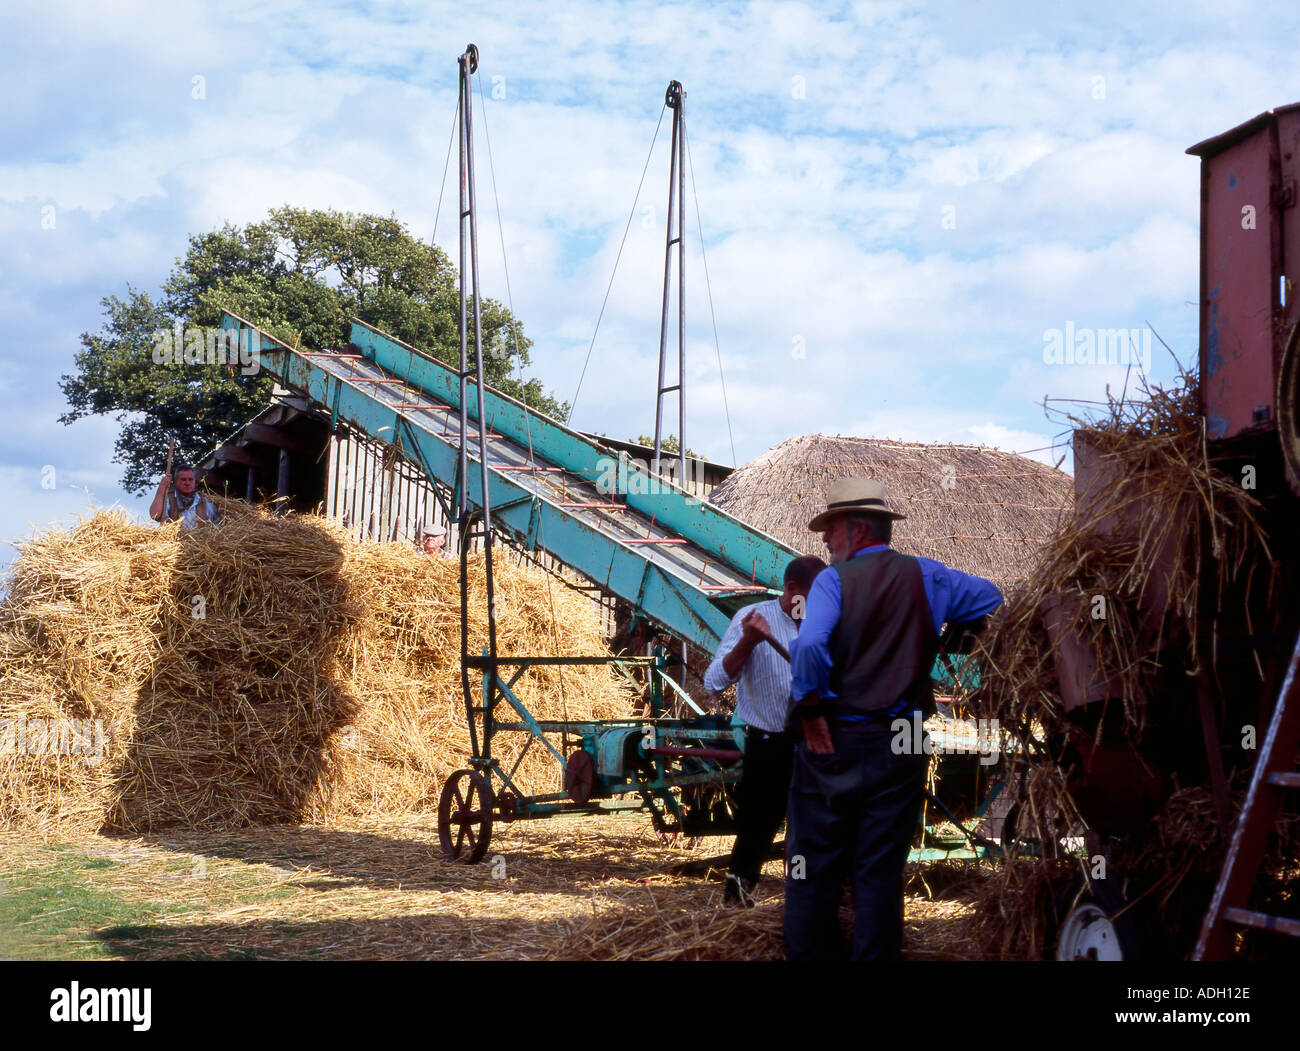 Part Of A Traditional Steam Powered Threshing Systems This